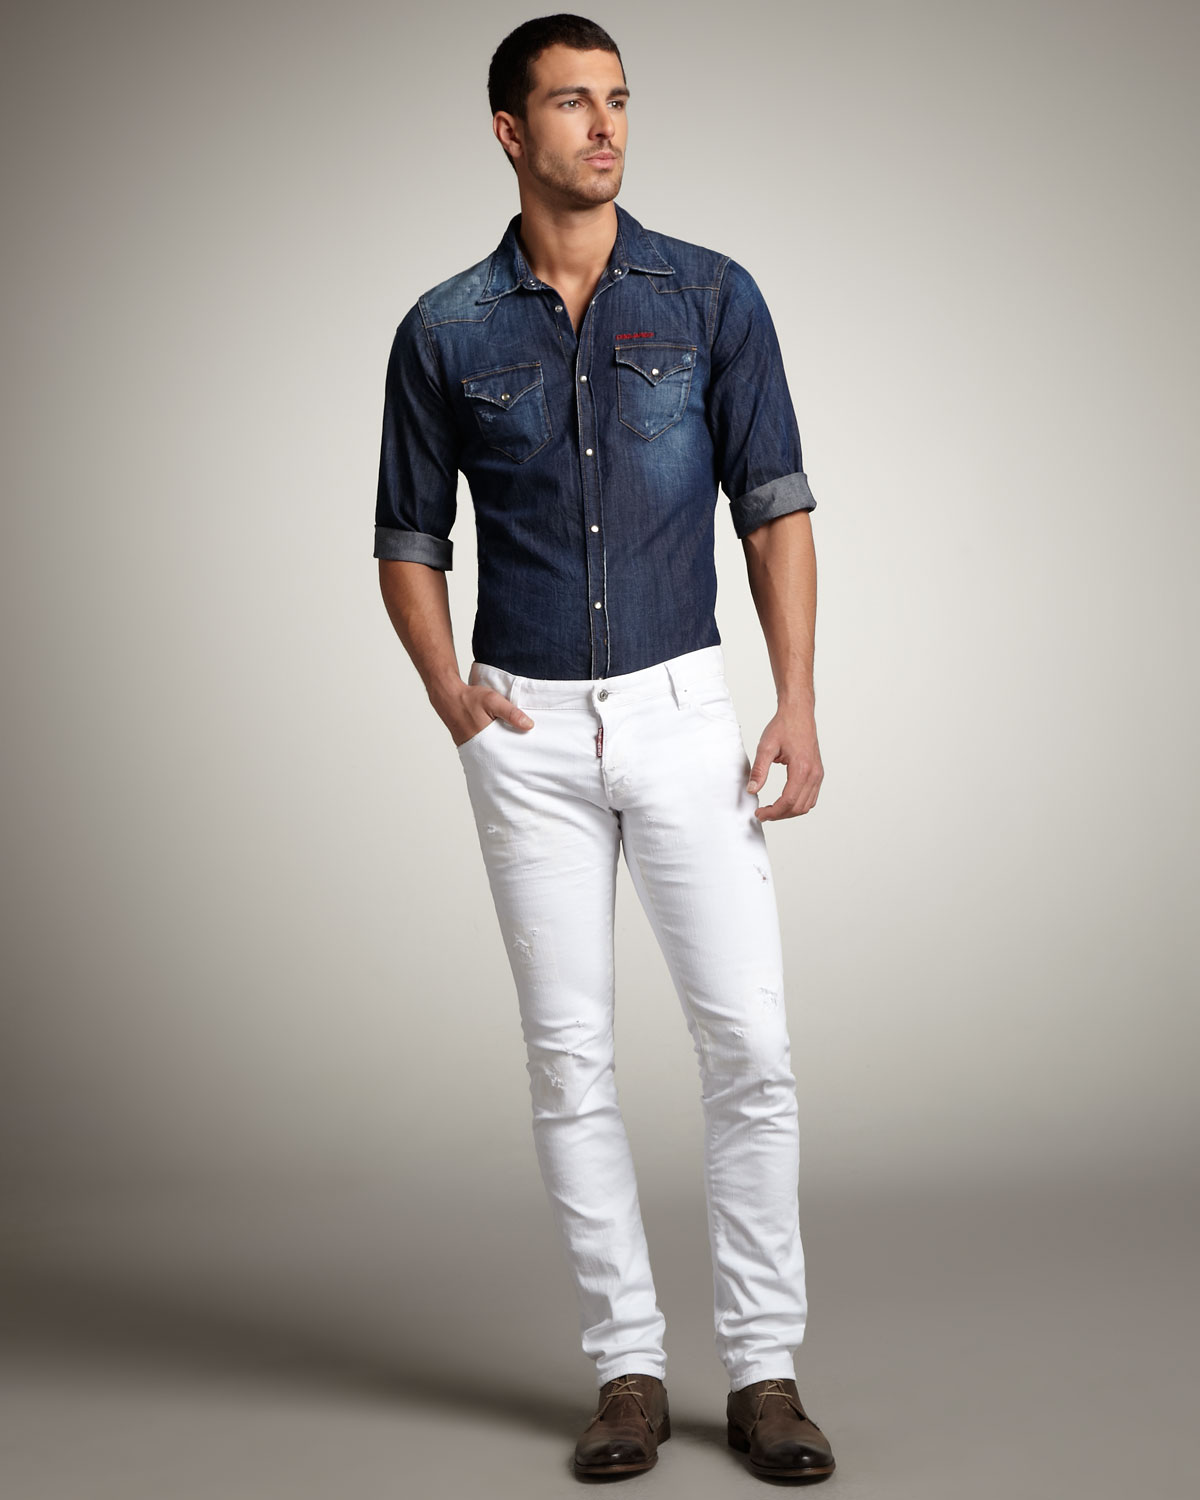 mens white jeans gallery dberwxt